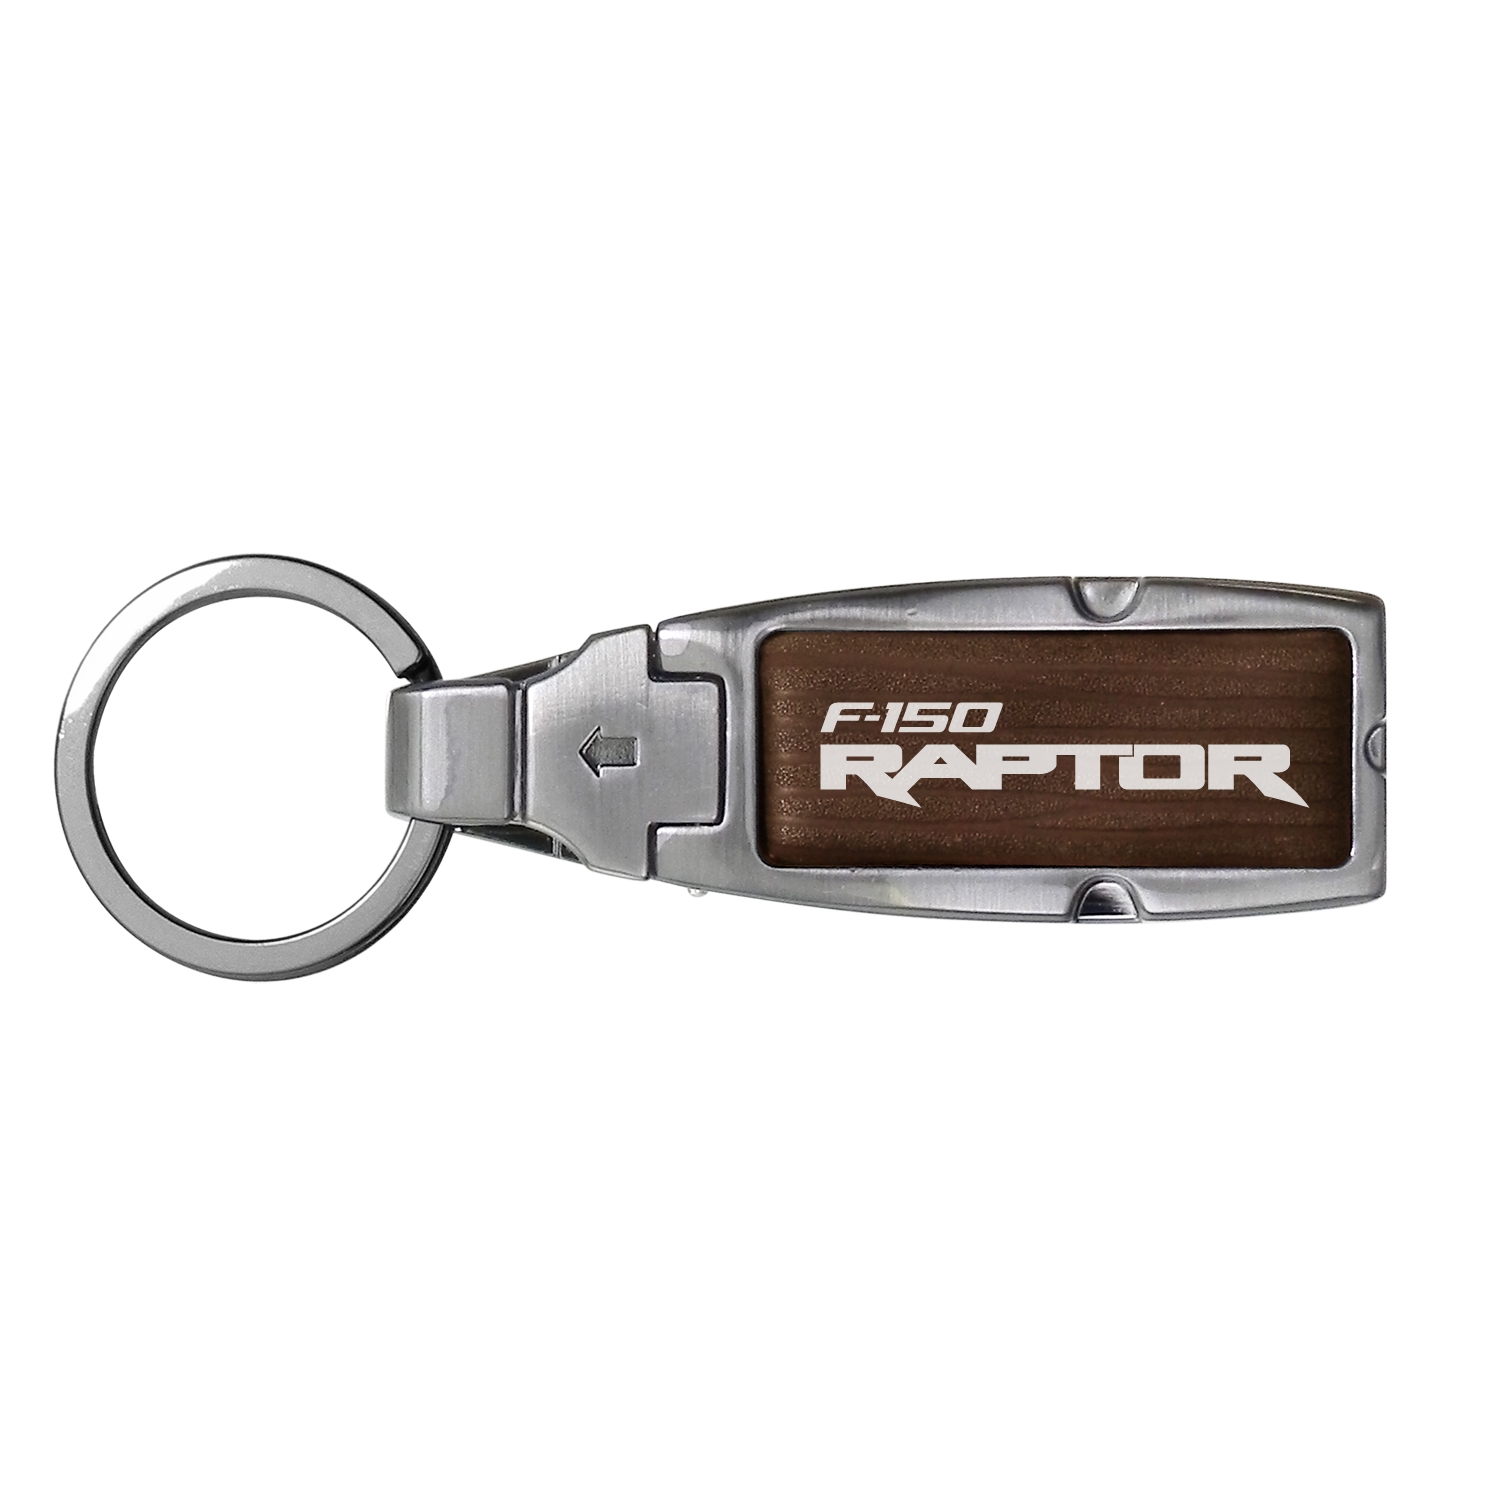 Ford F150 Raptor in Color Brown Leather Detachable Ring Black Metal Key Chain